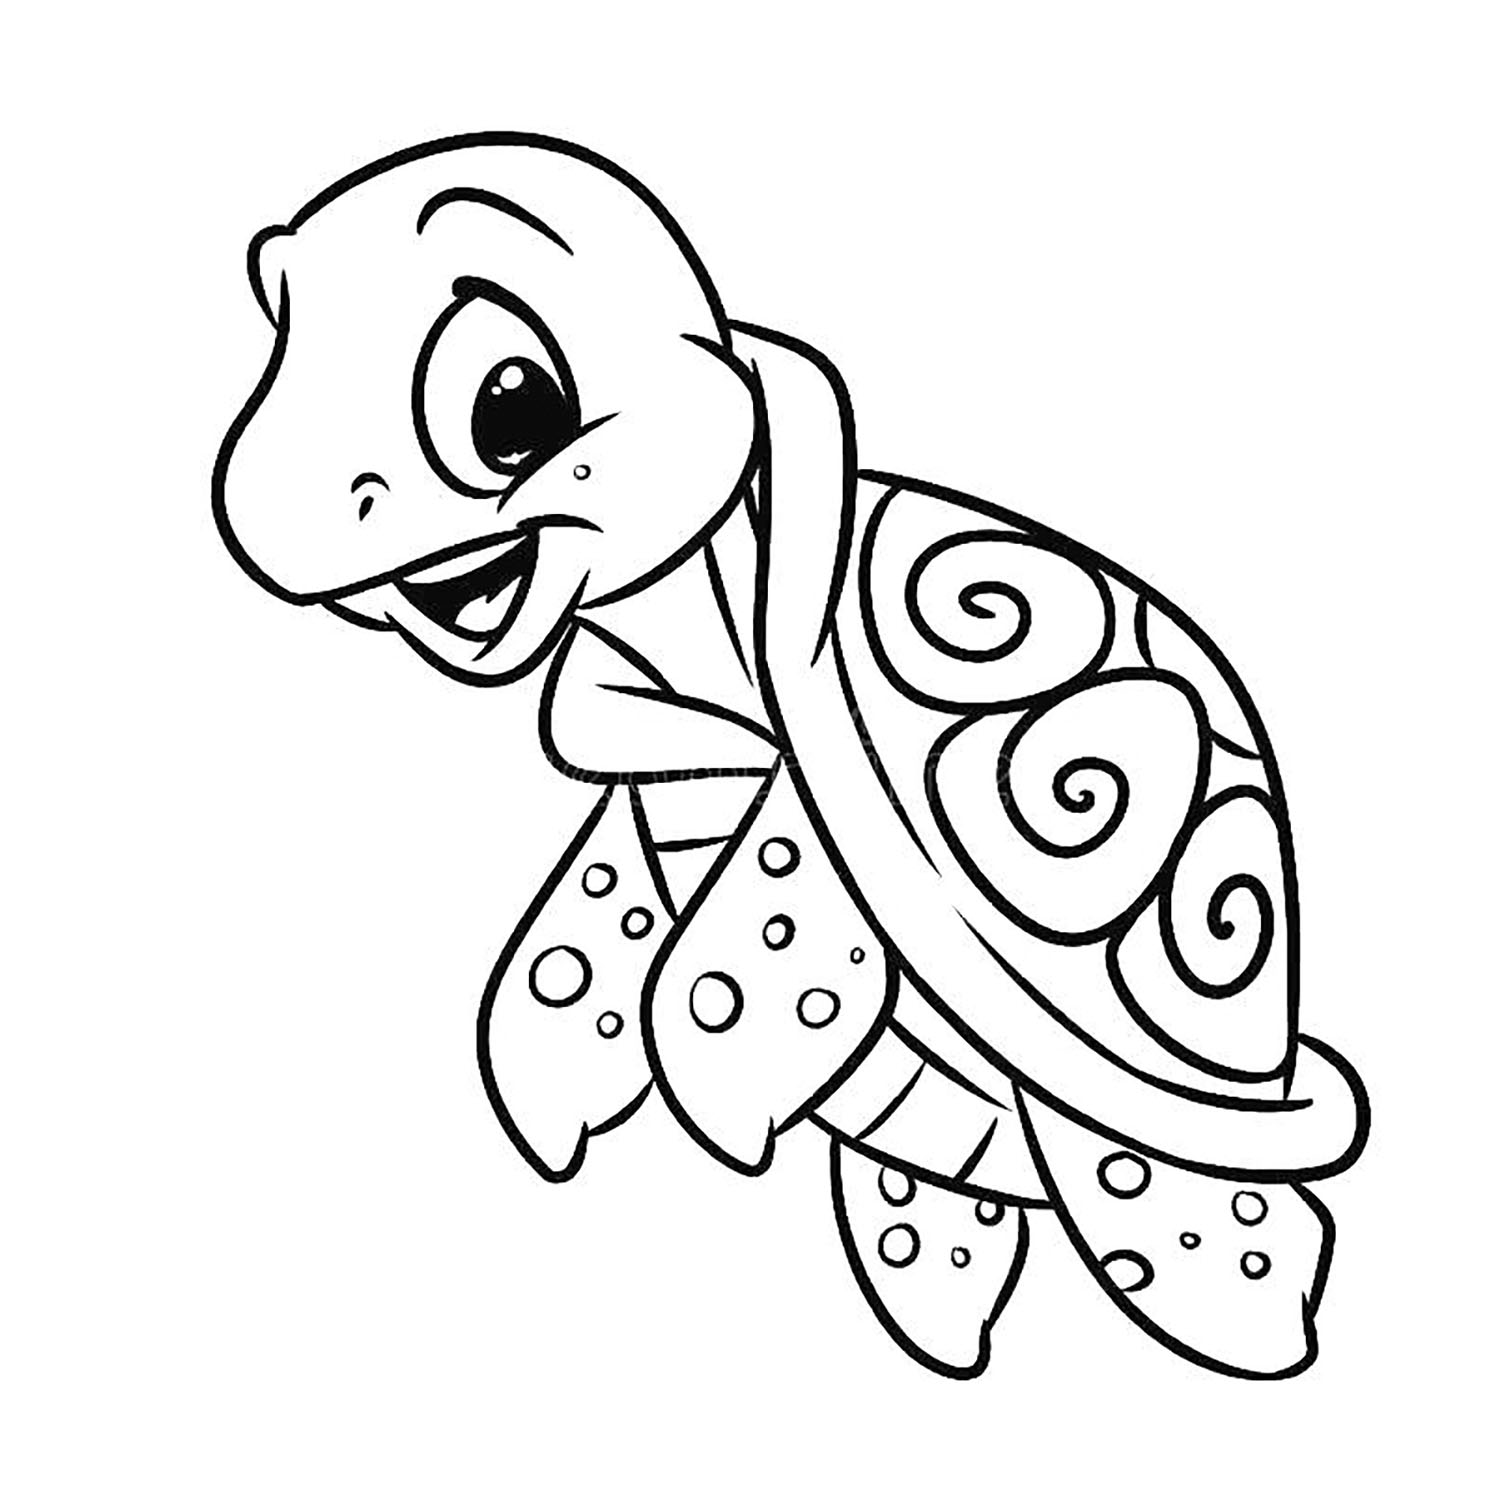 turtles colouring top printable turtle coloring pages vincent blog colouring turtles